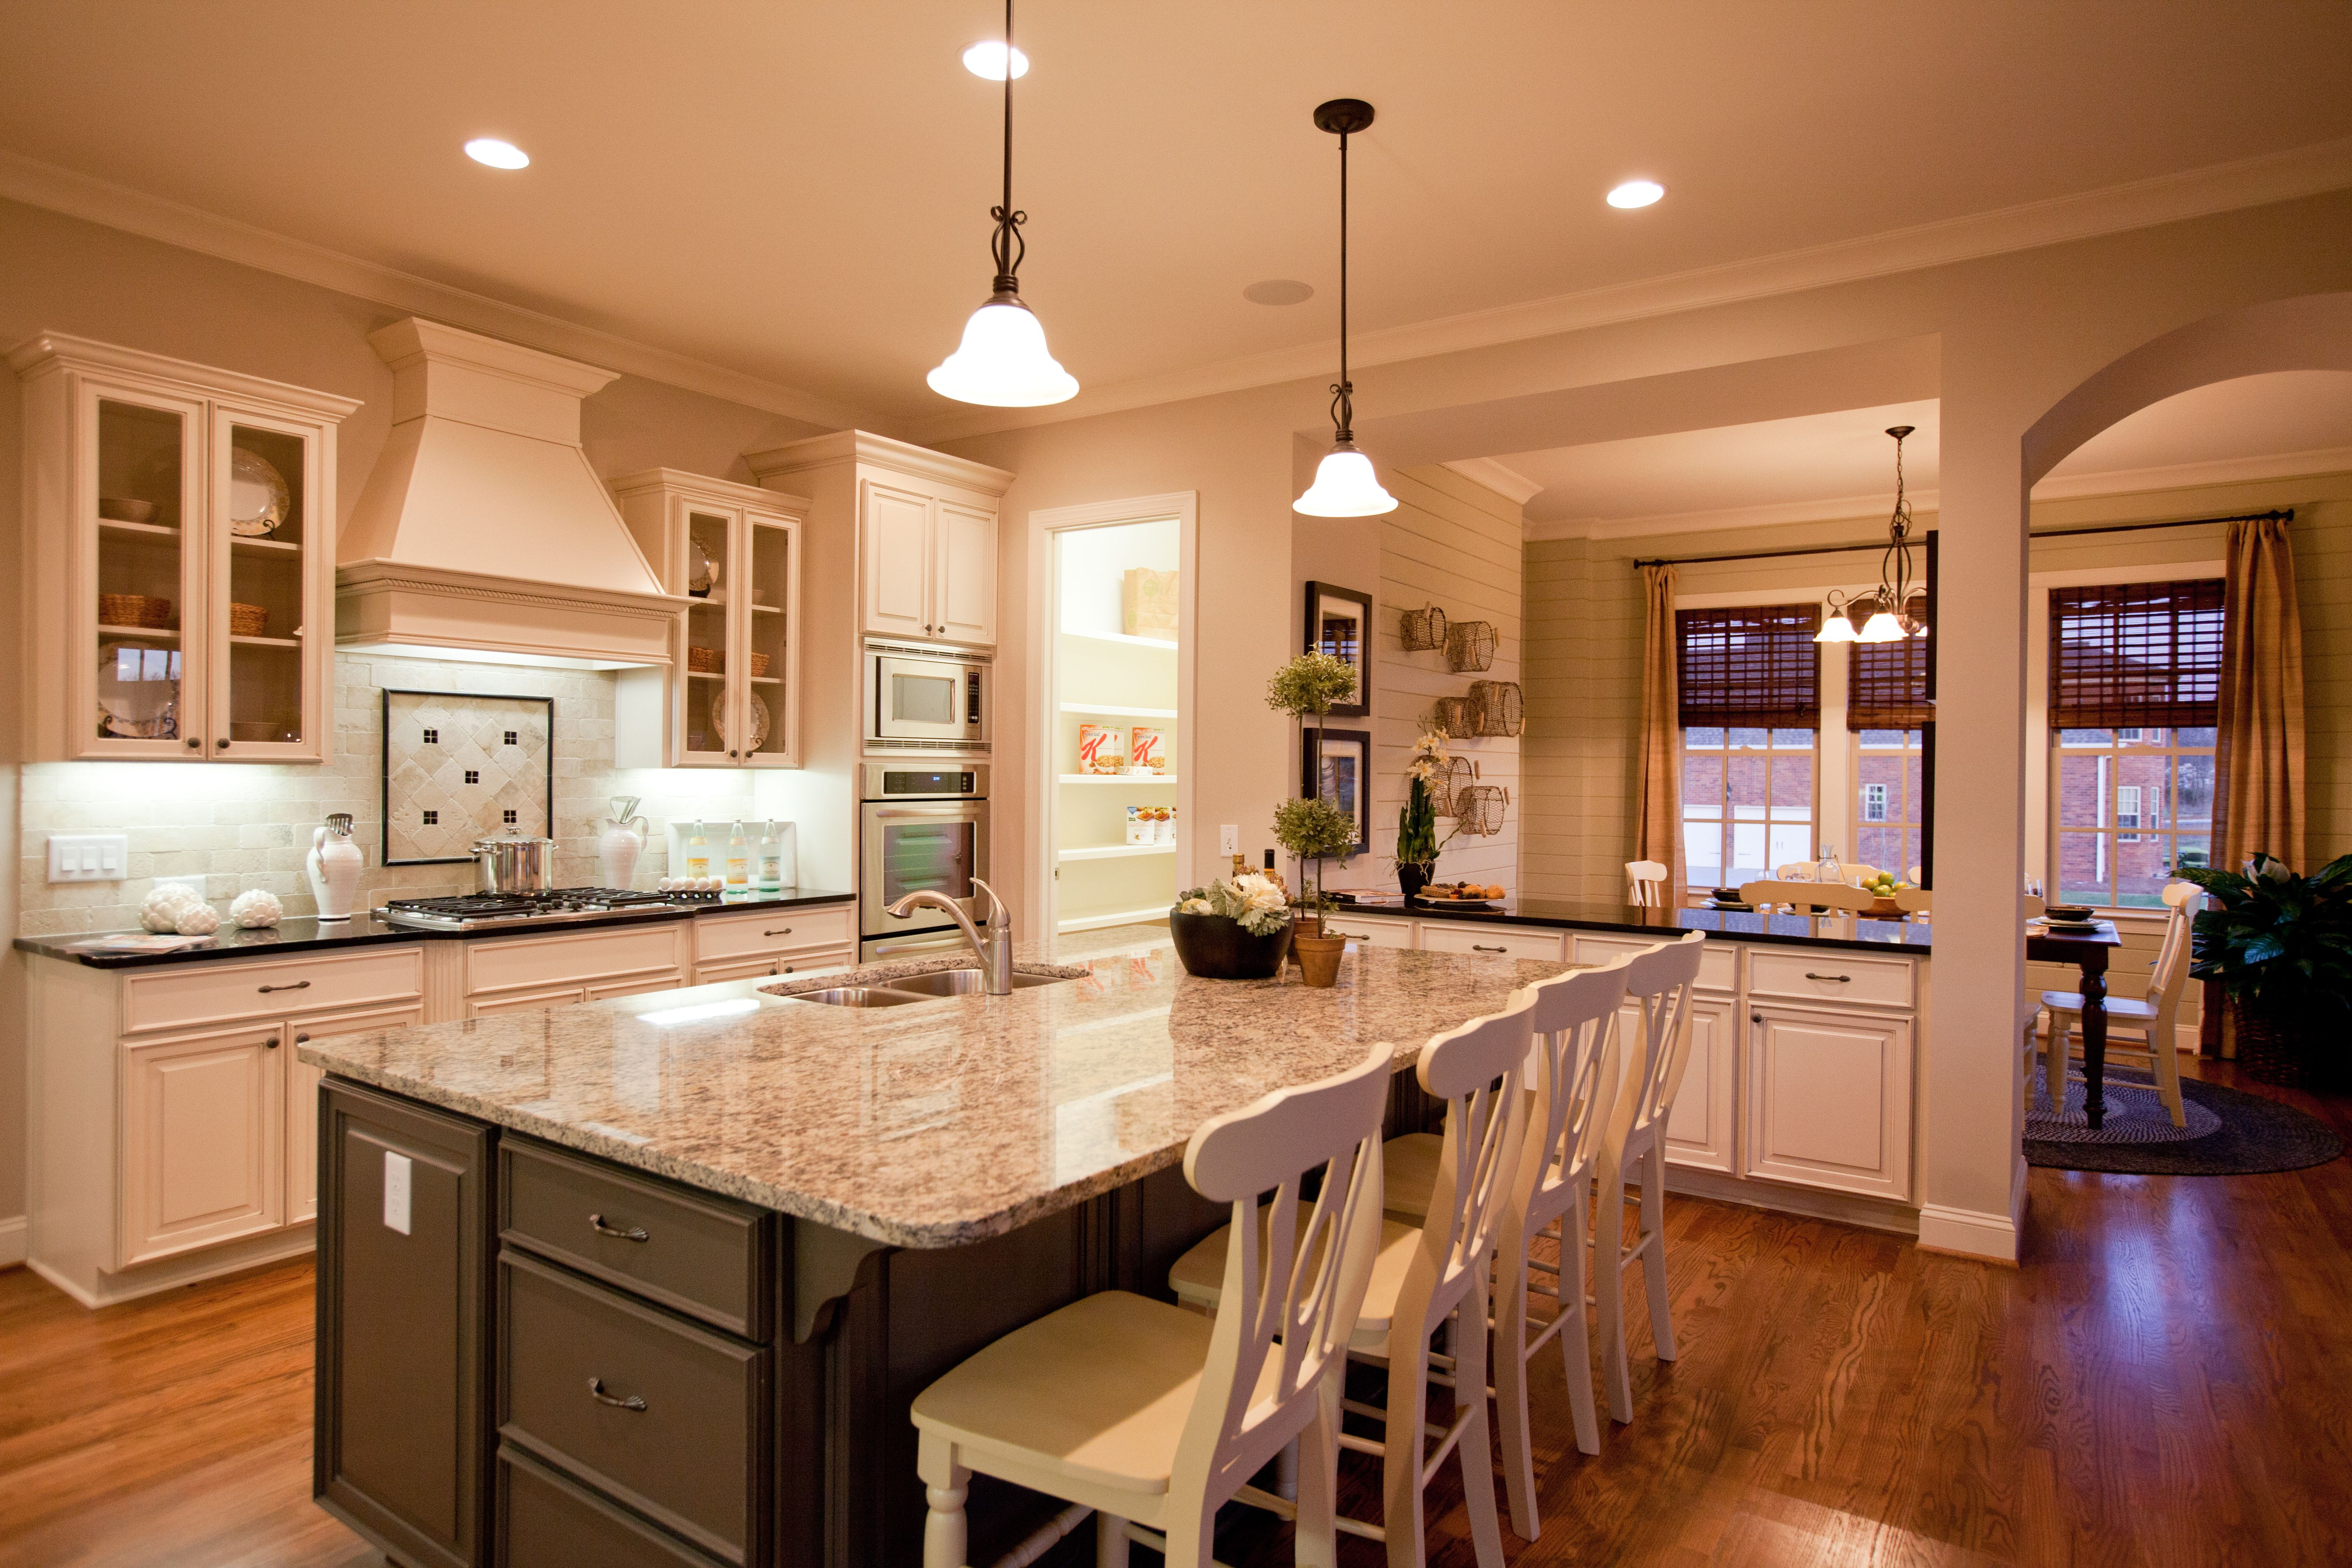 Model home kitchens pictures